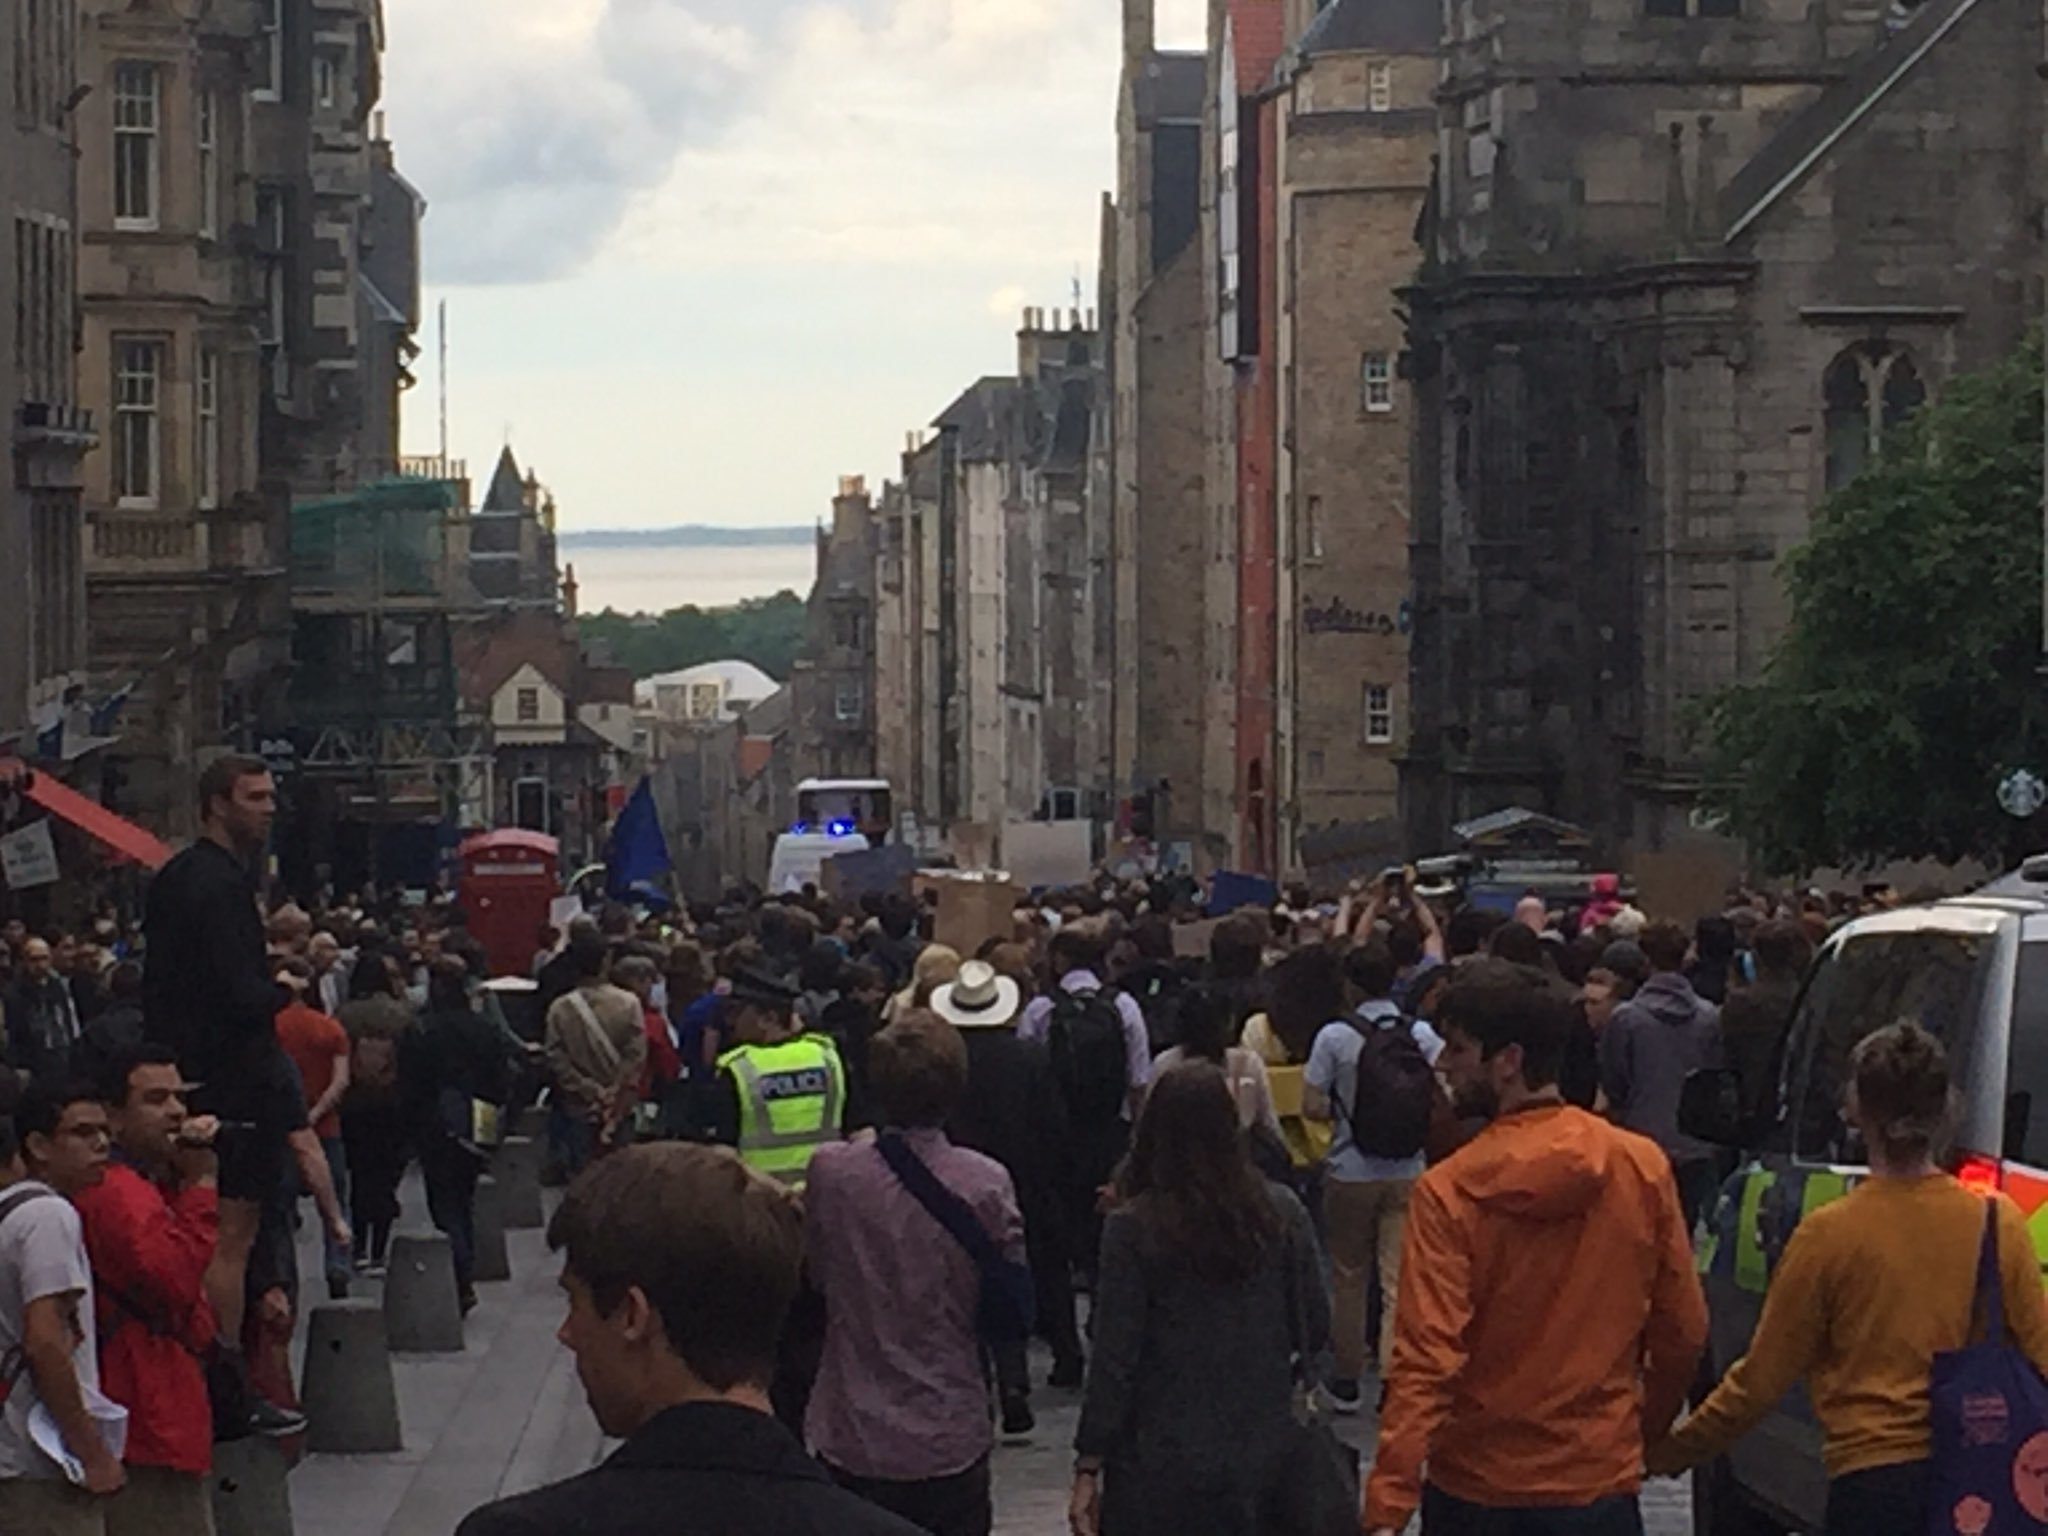 Protesters took to the streets in Edinburgh.